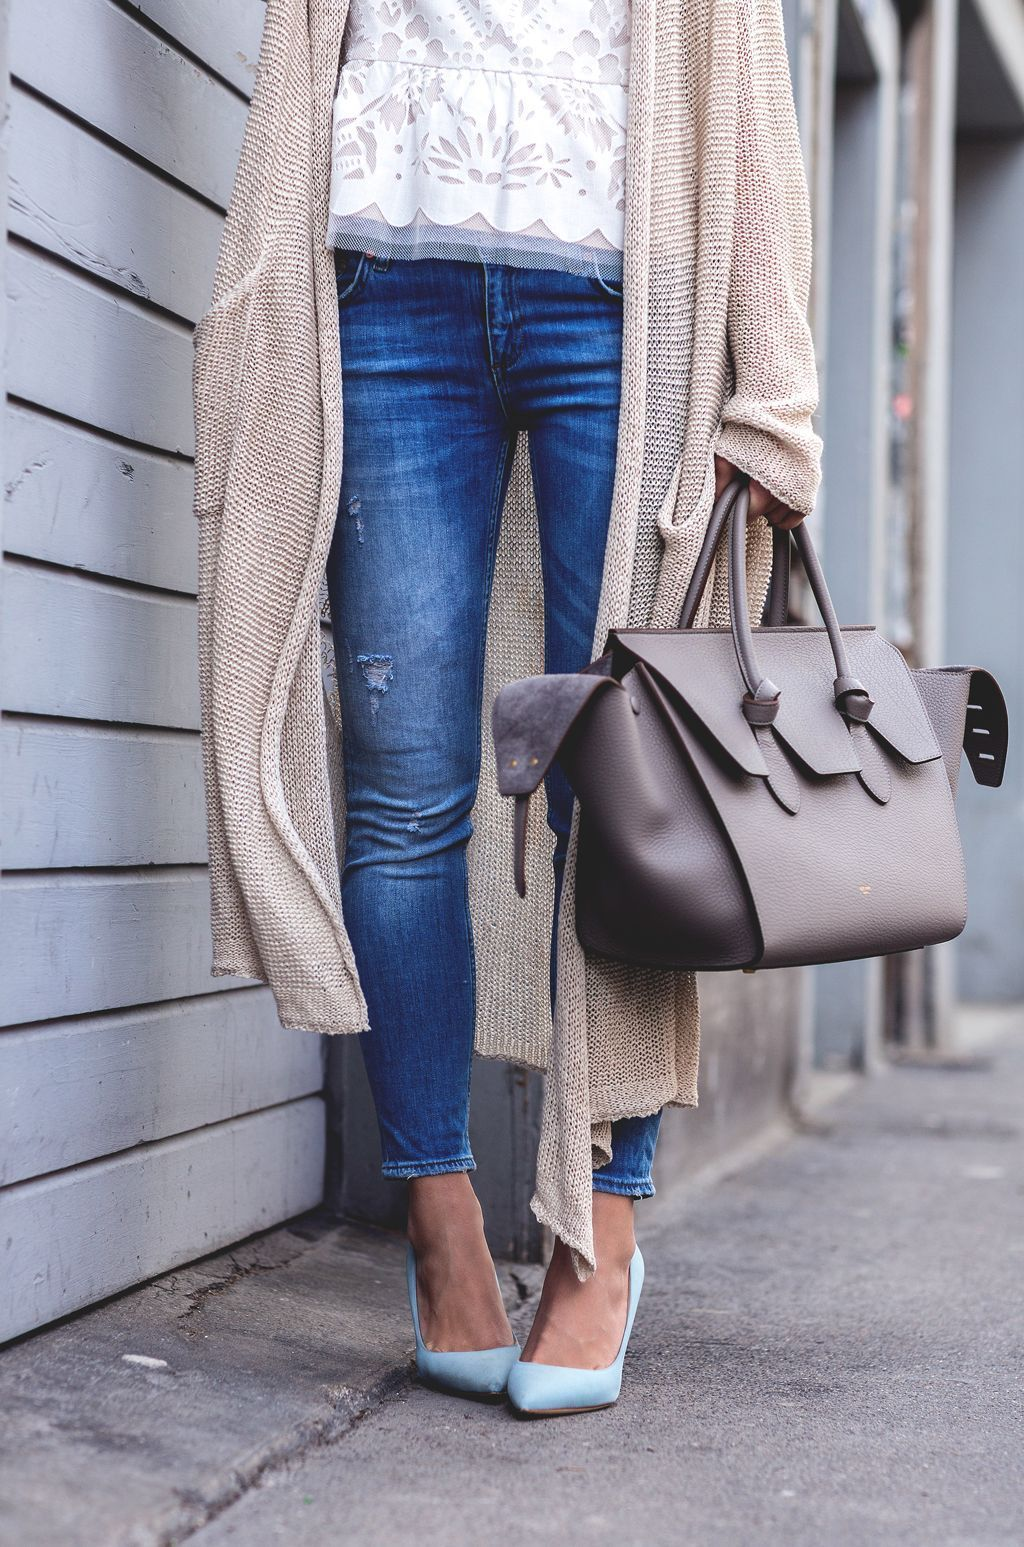 The_Fashion_Fraction_Fashion_Blog_Mode_Blogger_Casual_Style_Celine_Bag_Jeans_BCBG_Top_Swiss_Schweiz_Switzerland_Inspiration_3